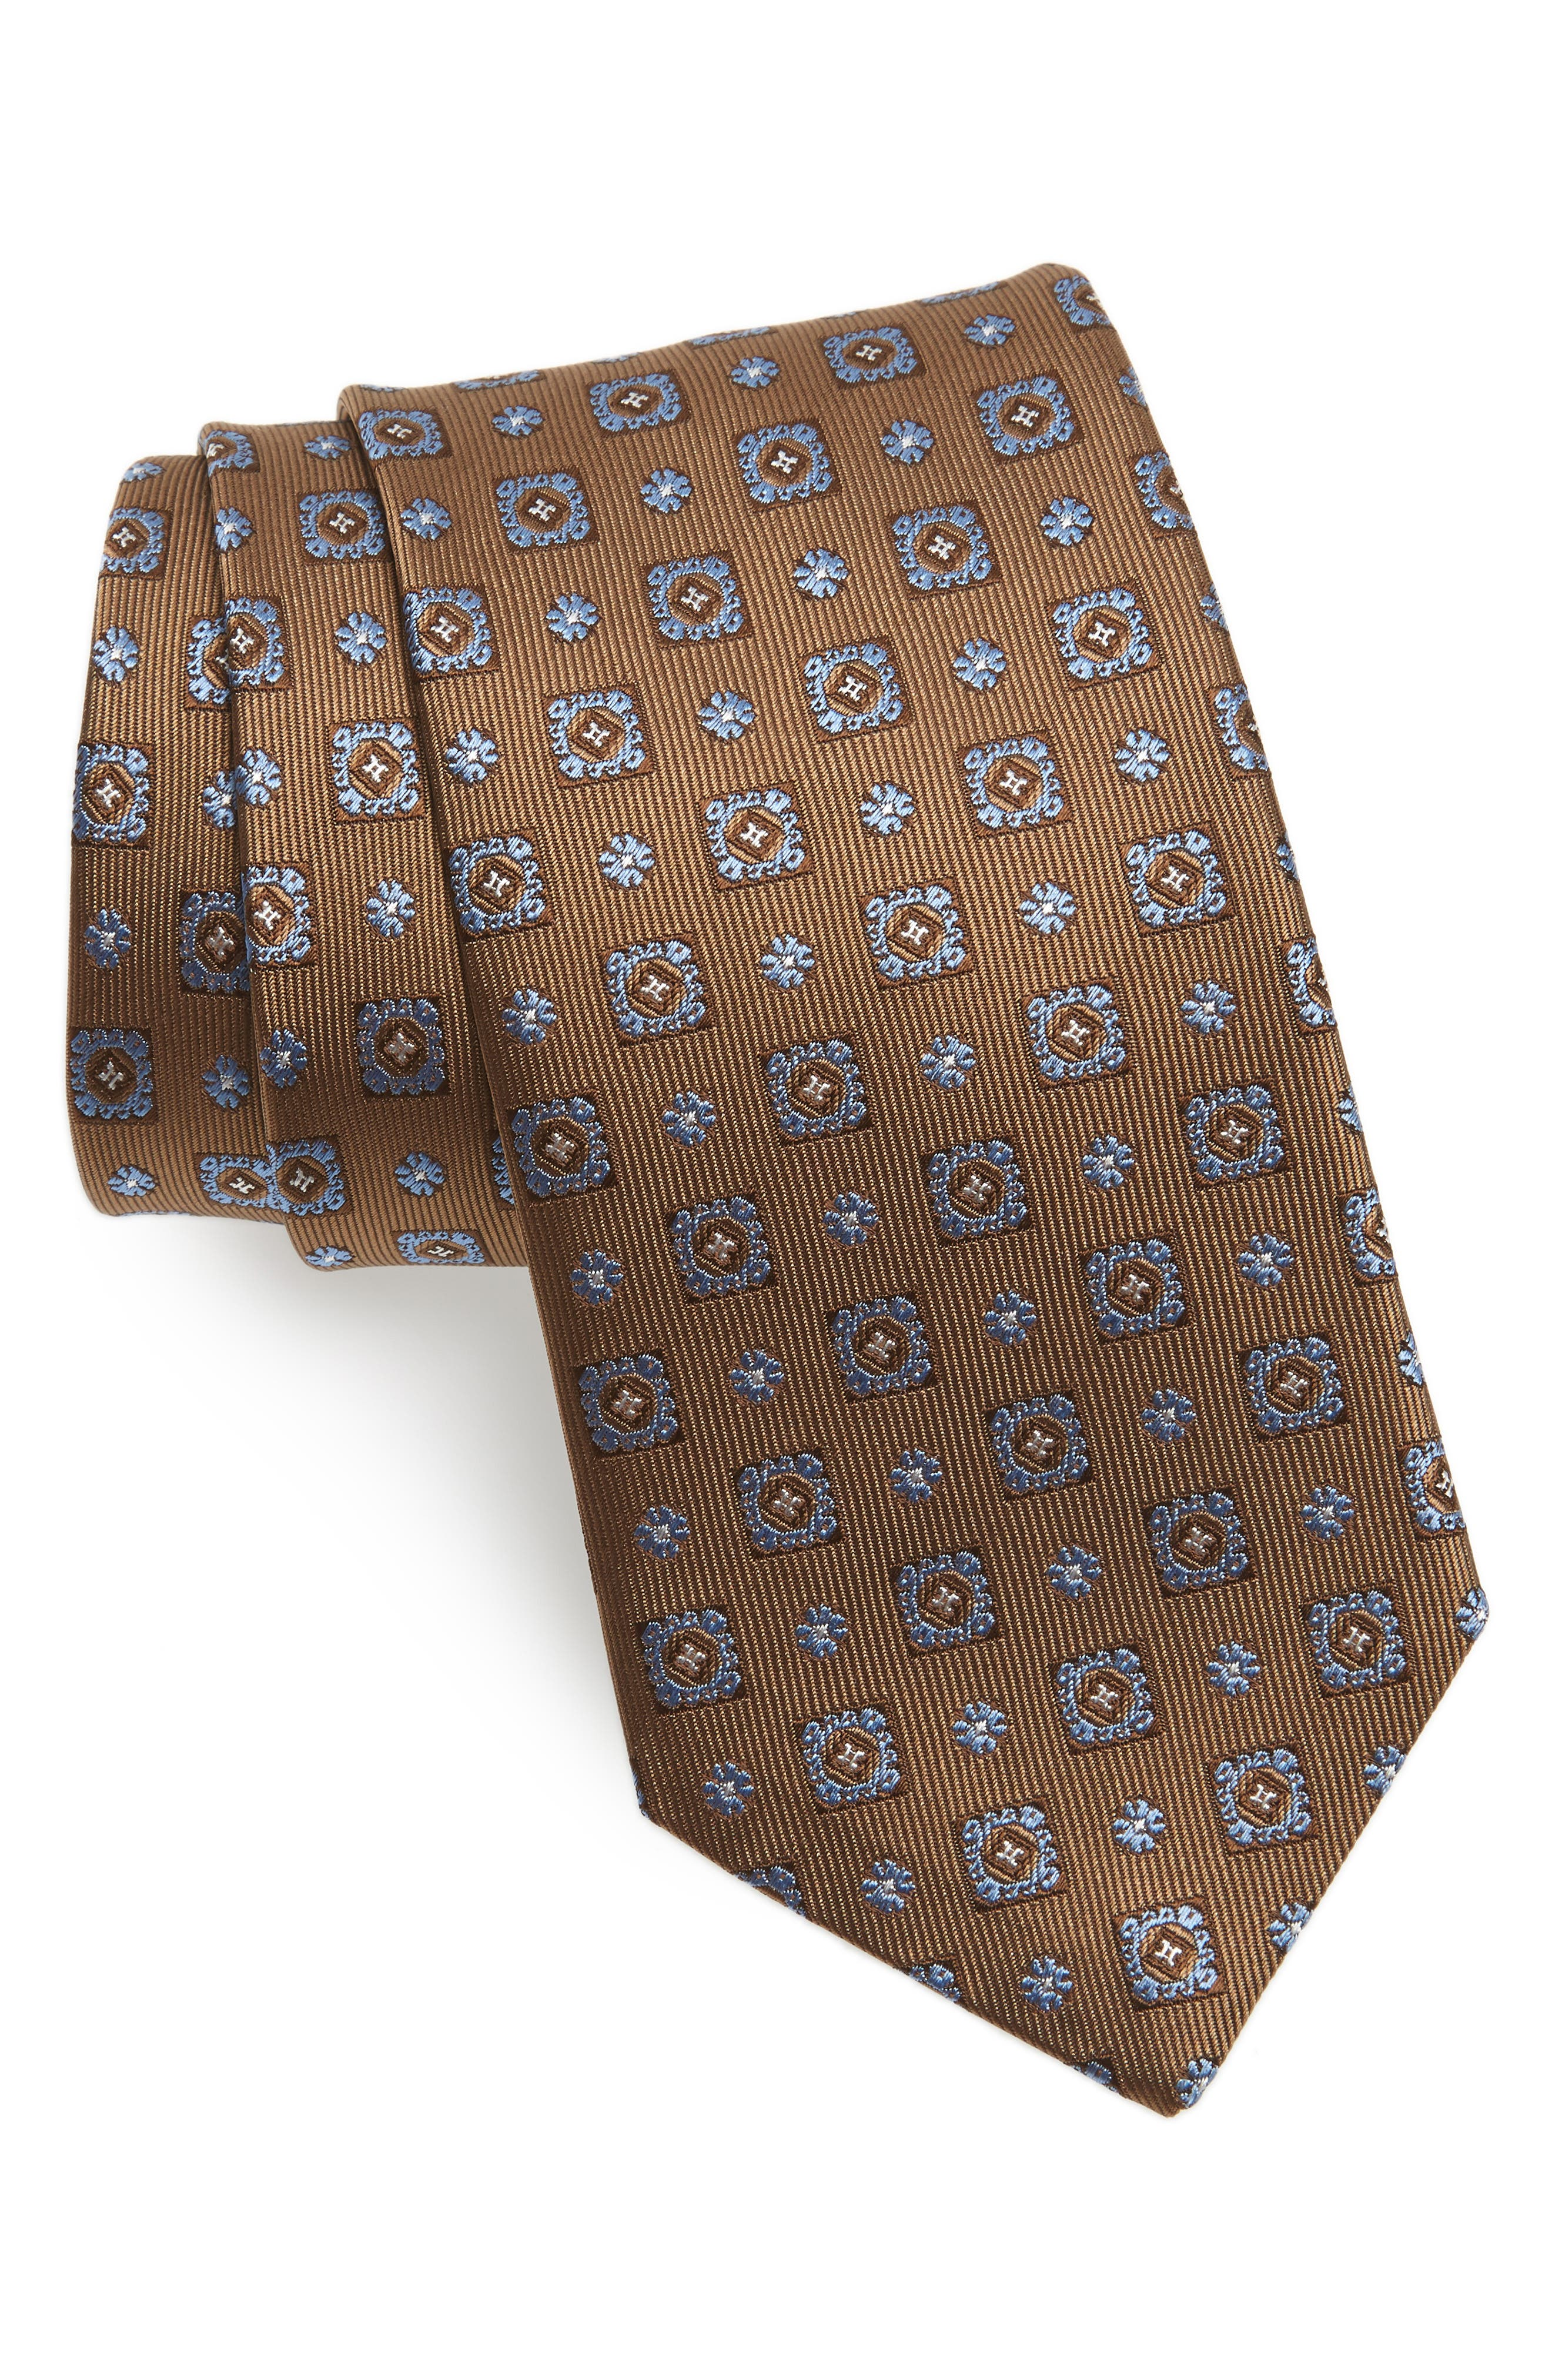 Medallion Silk Tie,                             Main thumbnail 1, color,                             212